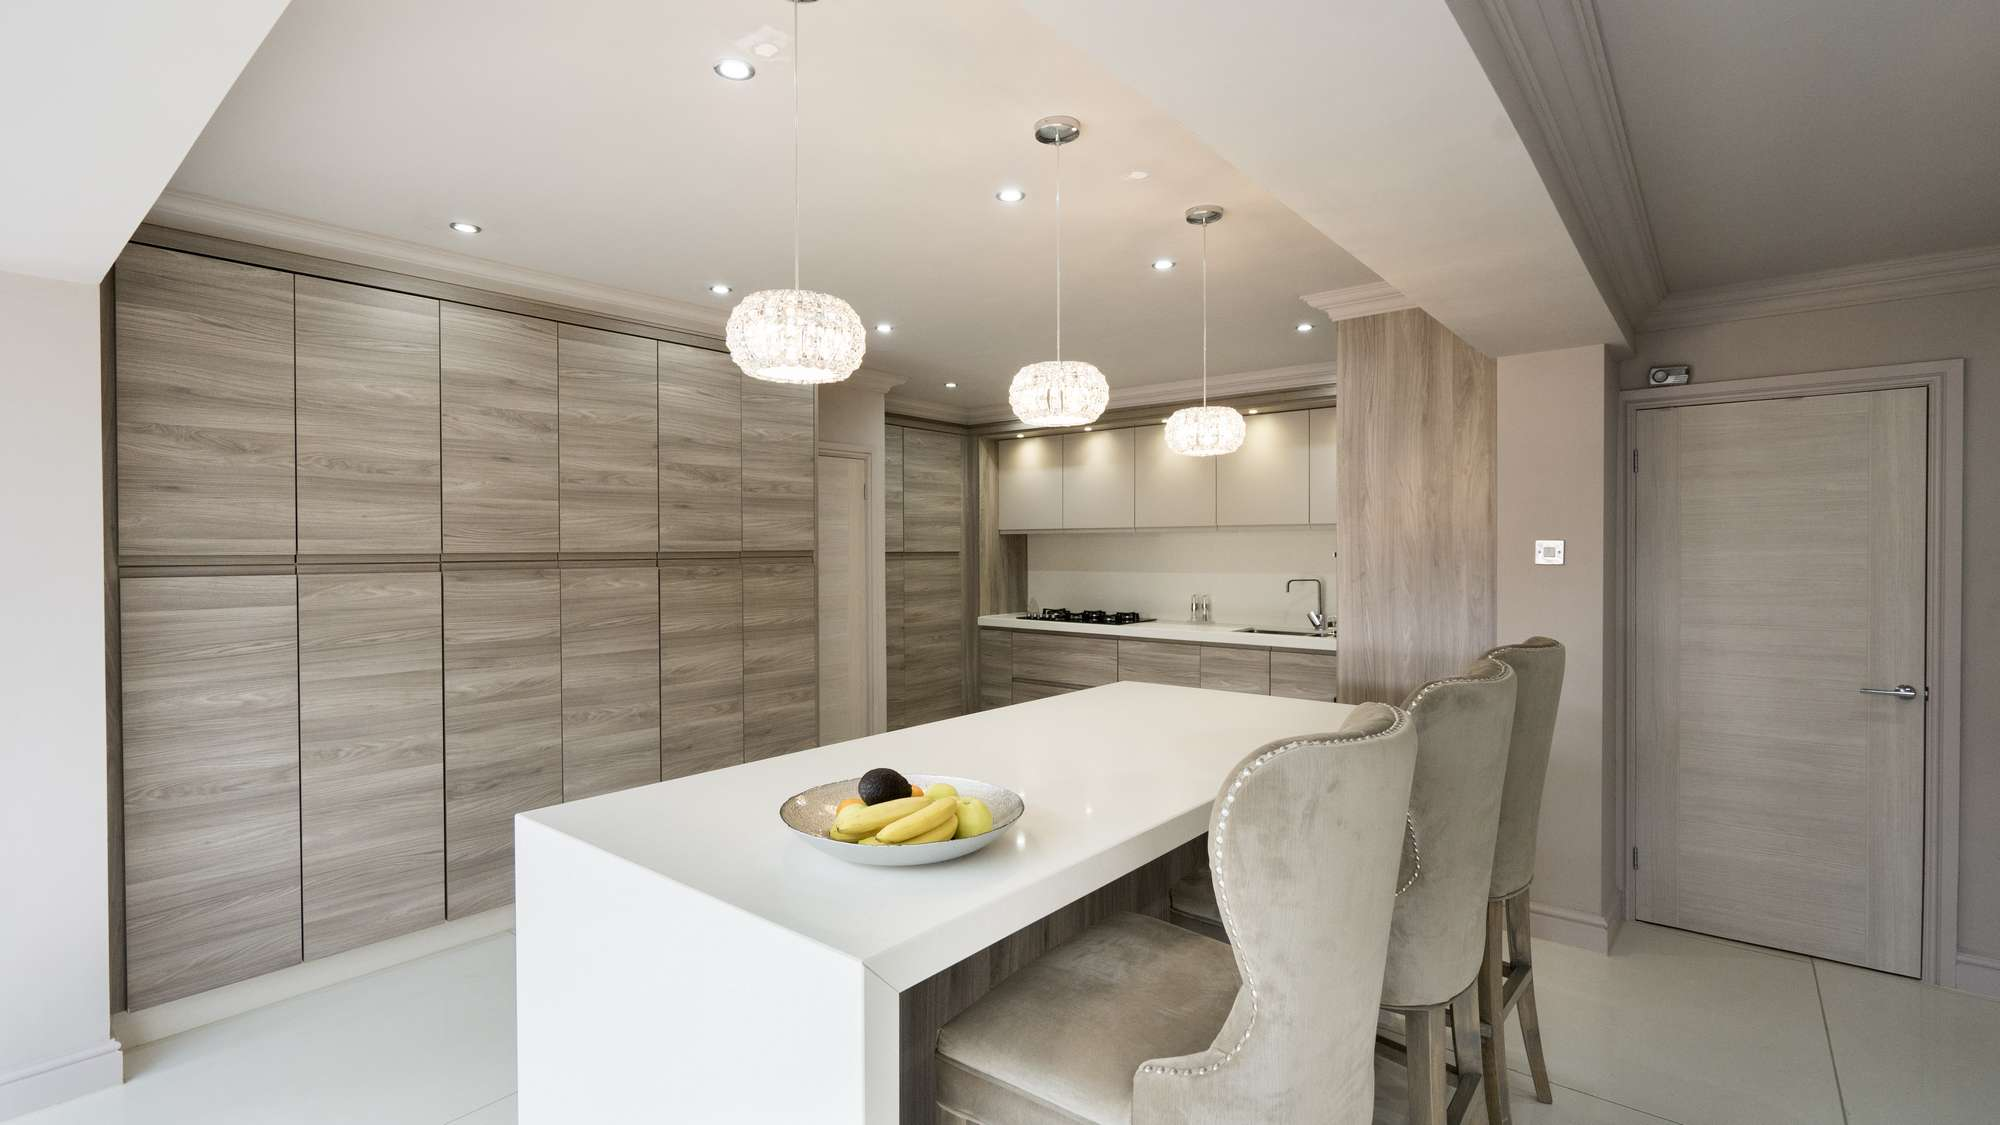 Another view of this kitchen in Liverpool showing the stunning lighting scheme and internal joinery.